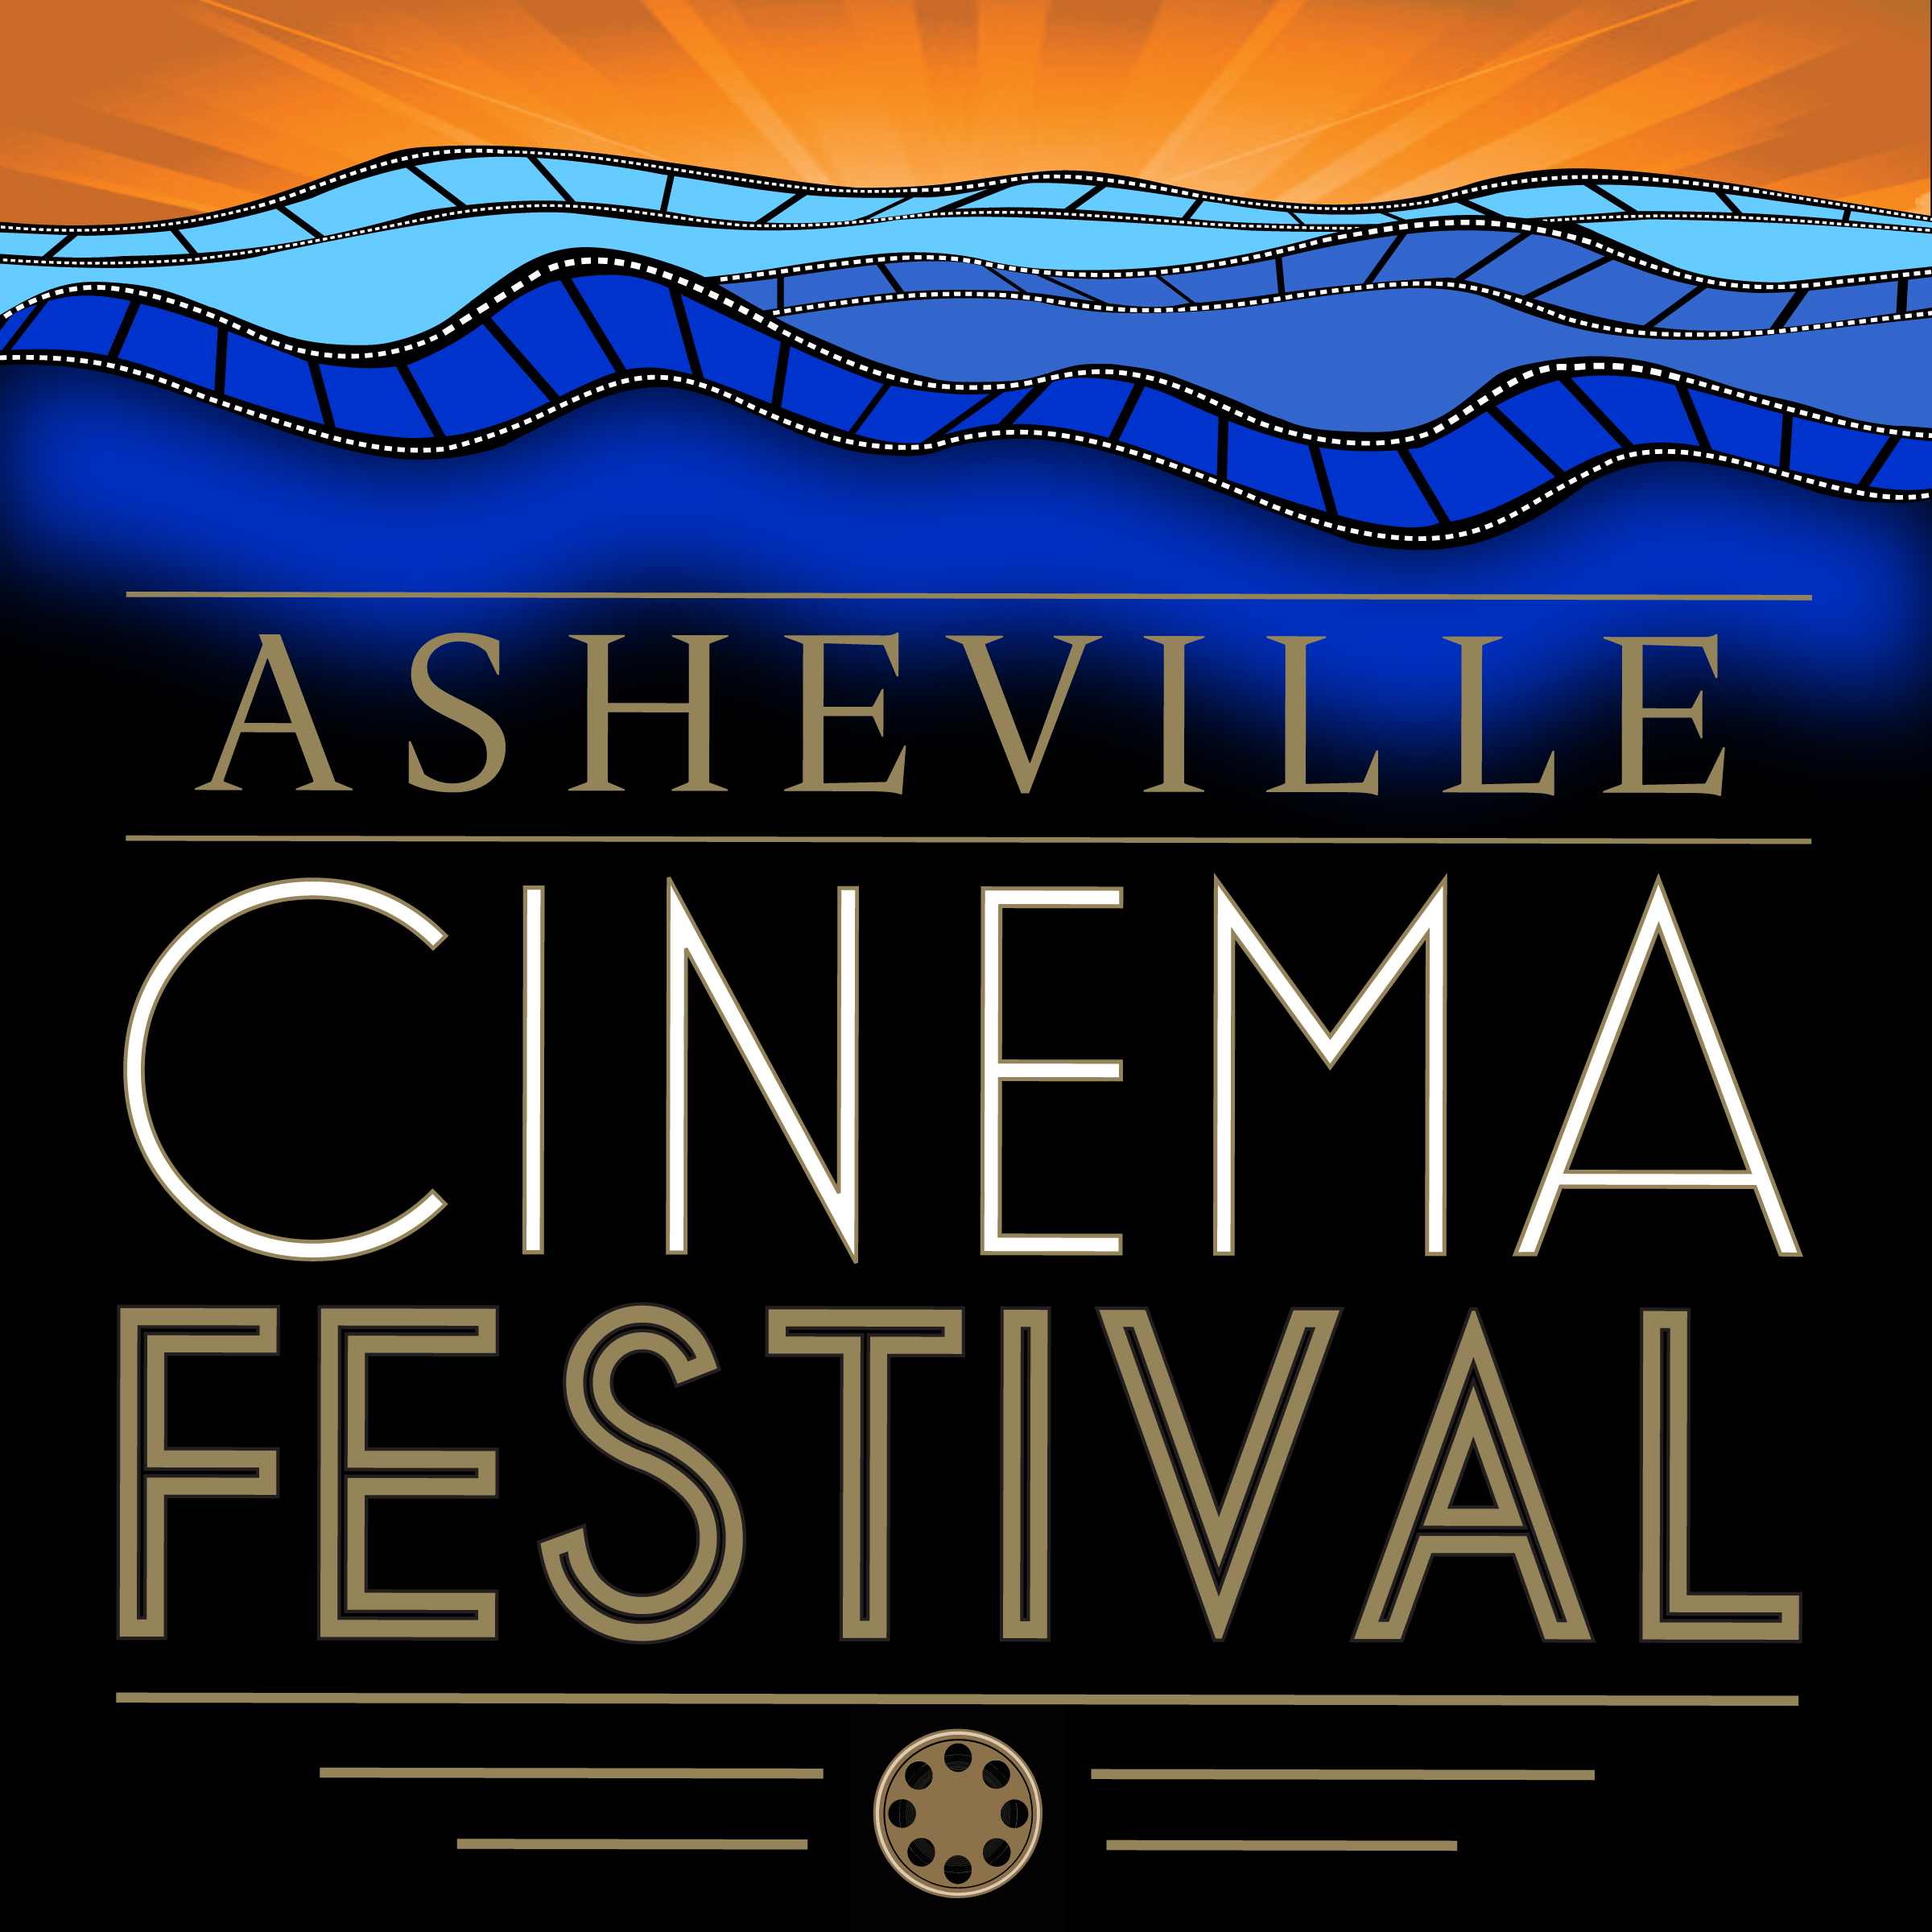 Big names coming to Cinema Festival in Asheville?